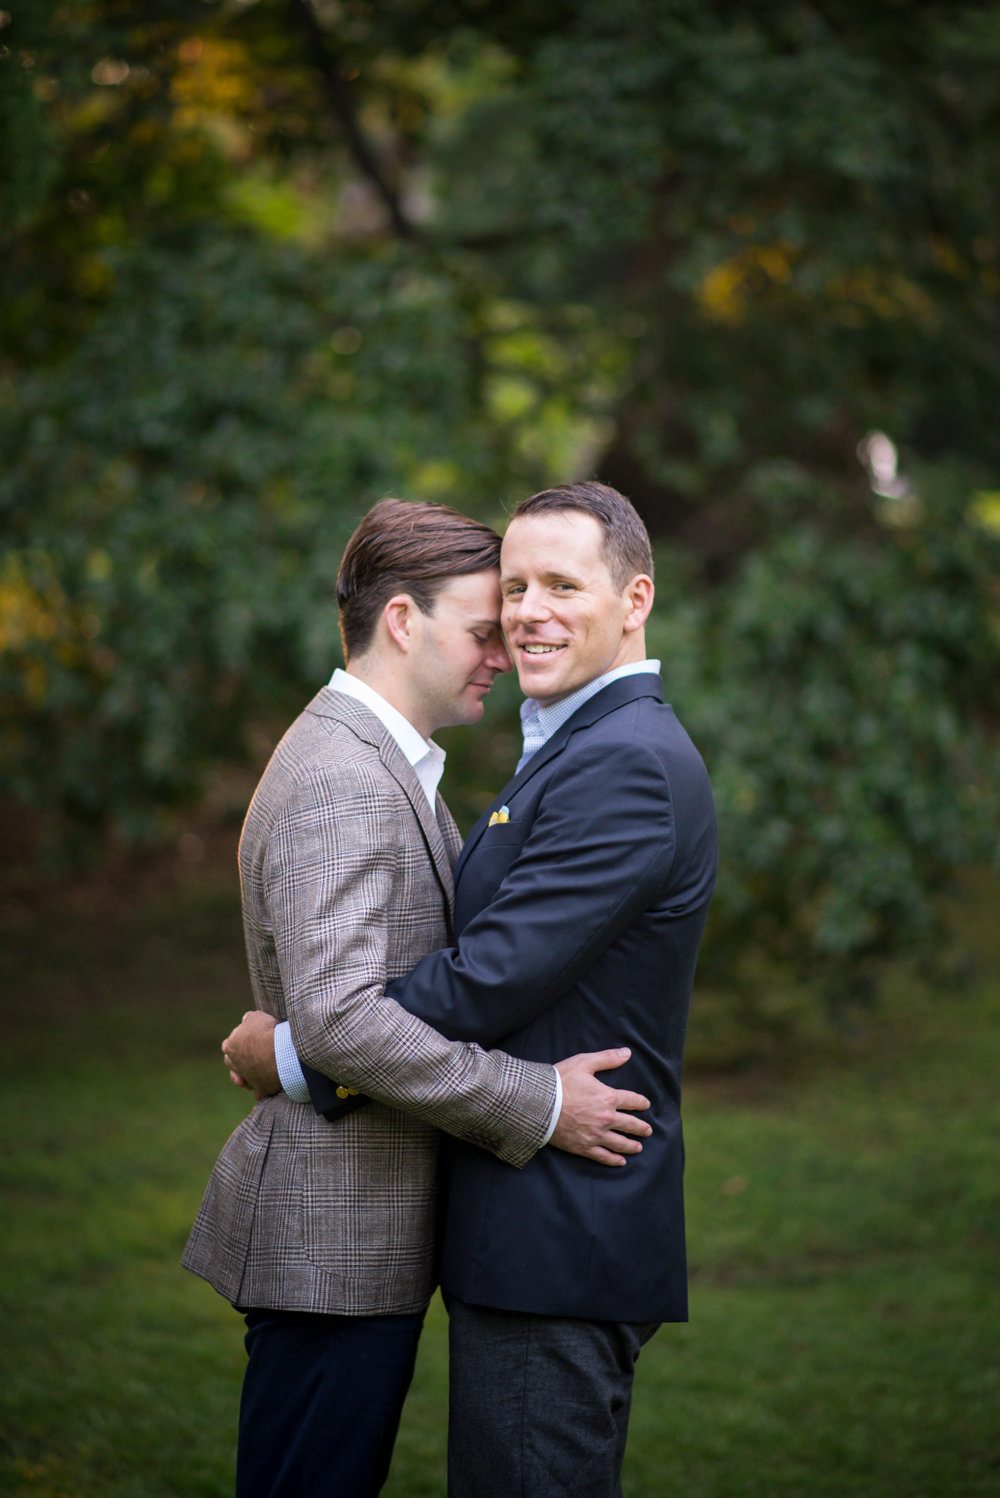 Gay Engagement Session Atlanta Georgia Wedding Photographer-18